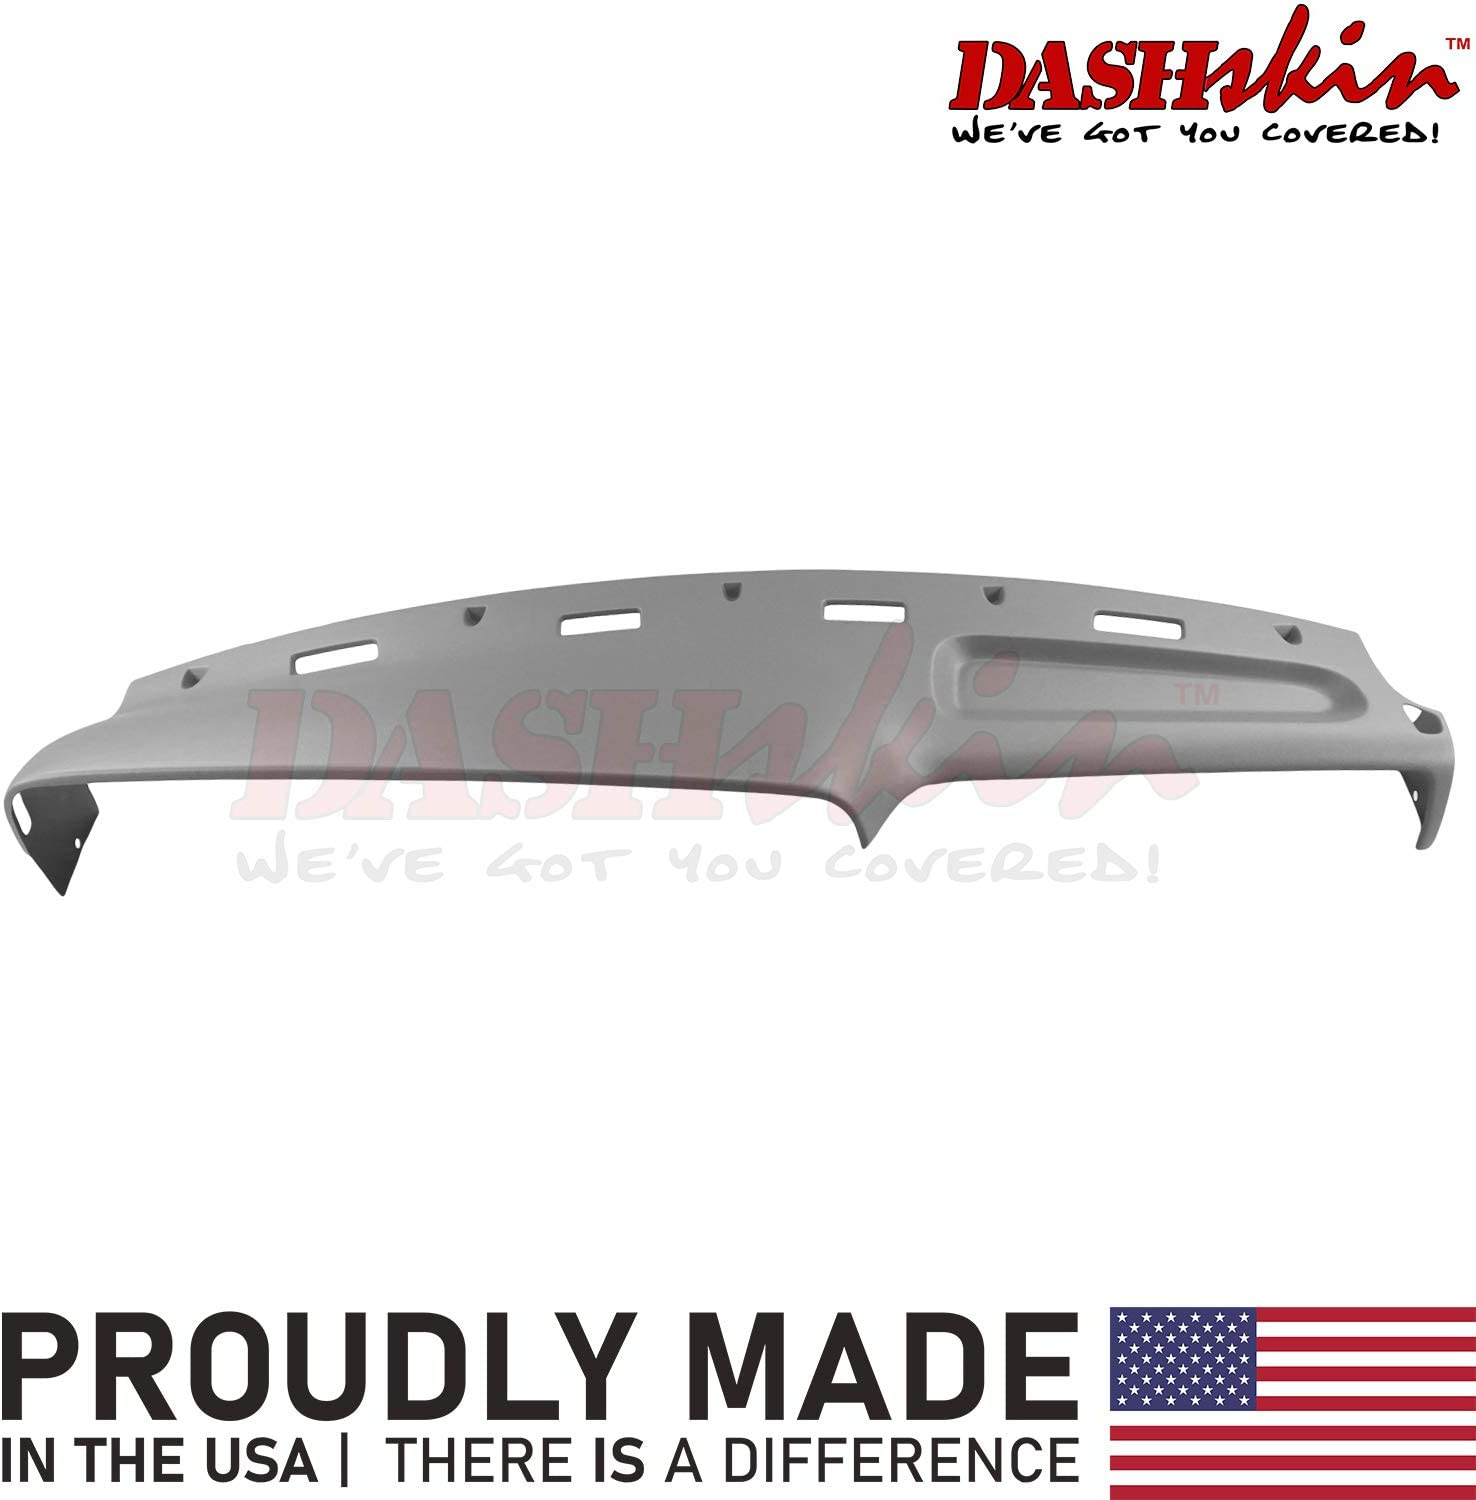 DashSkin Molded Dash Cover Compatible with in Wholesale Ram Industry No. 1 1997 Mis Dodge